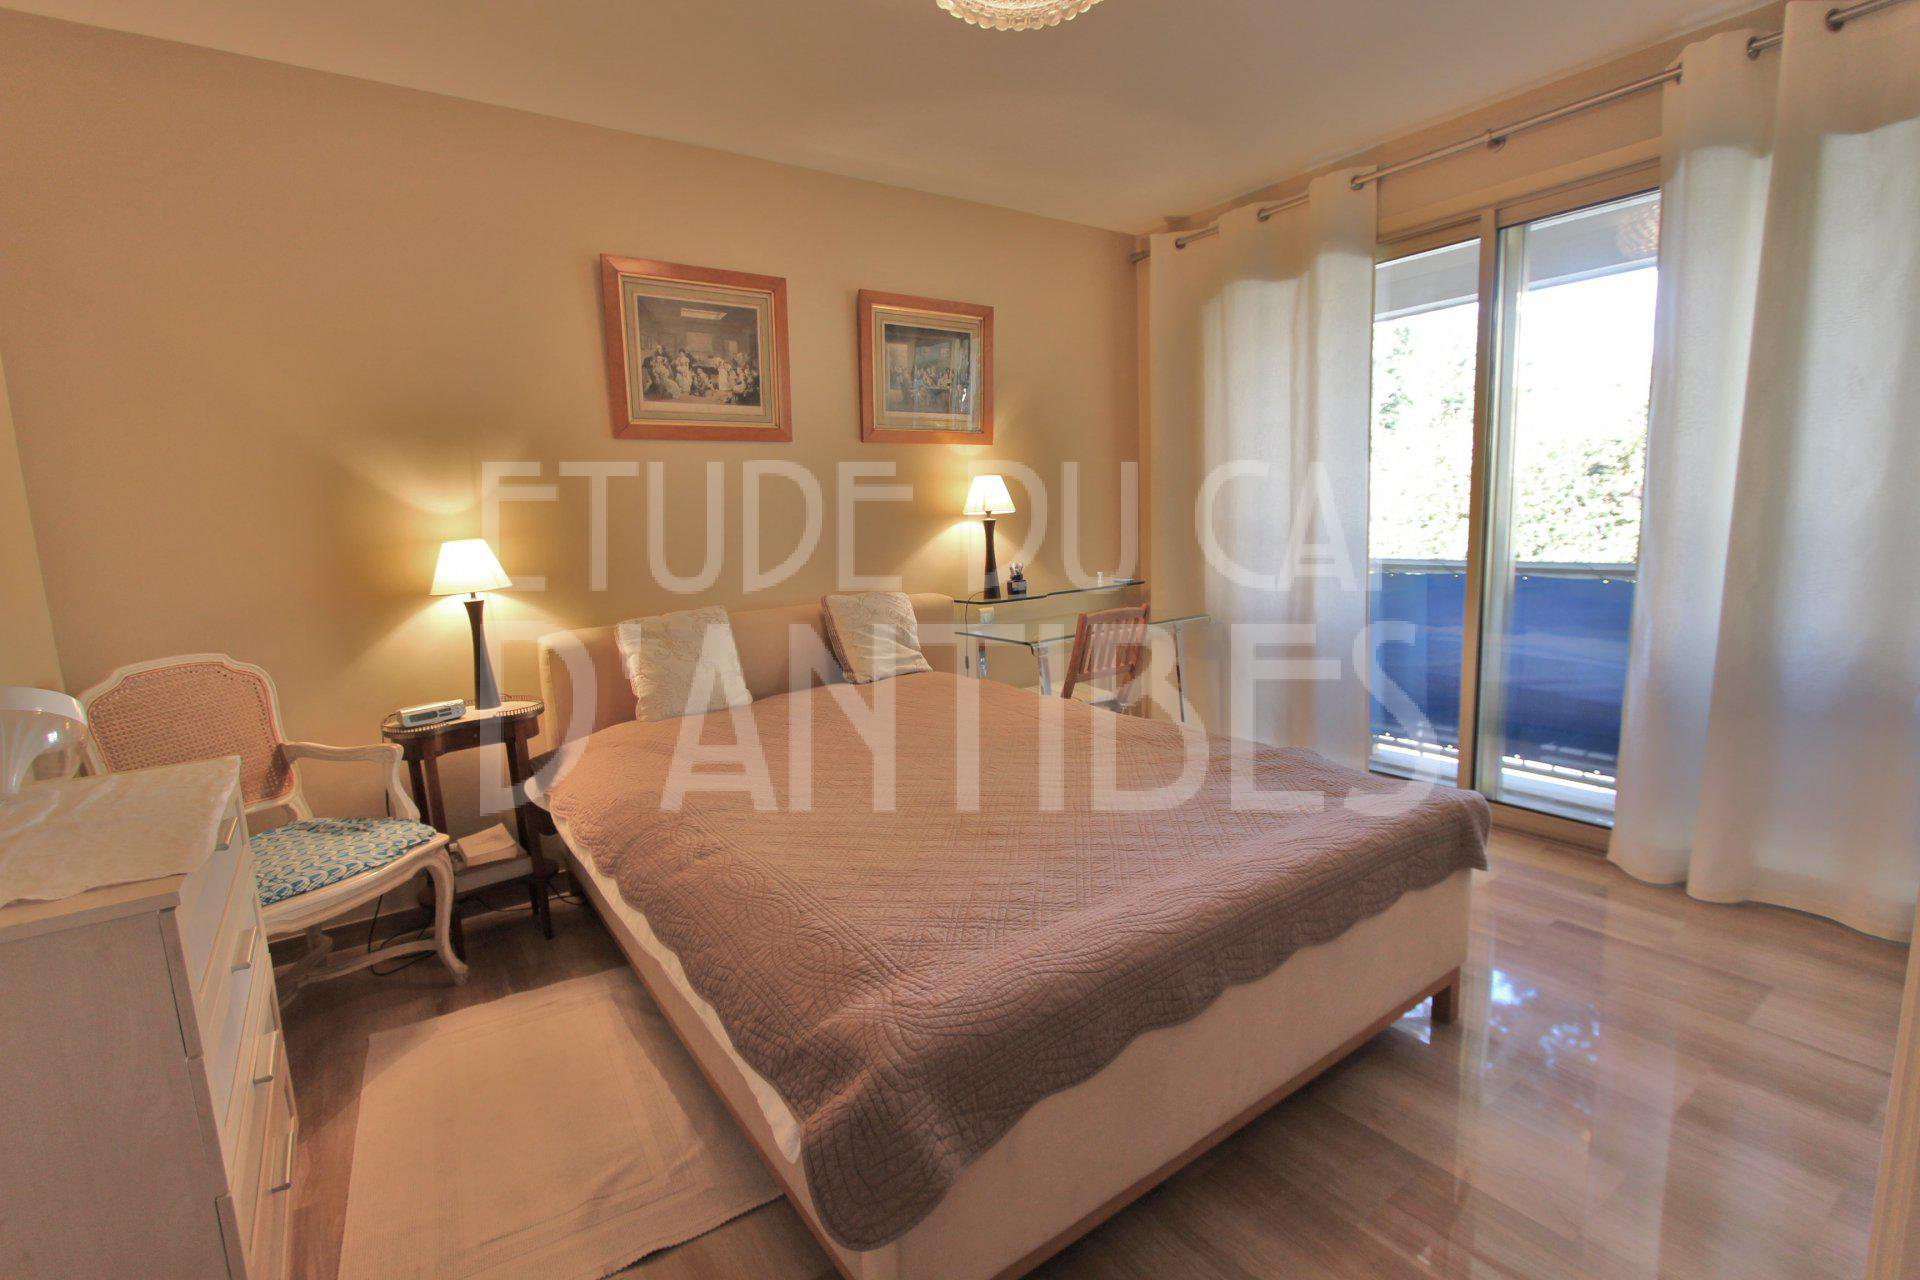 Affitto stagionale Appartamento - Antibes Cap-d'Antibes